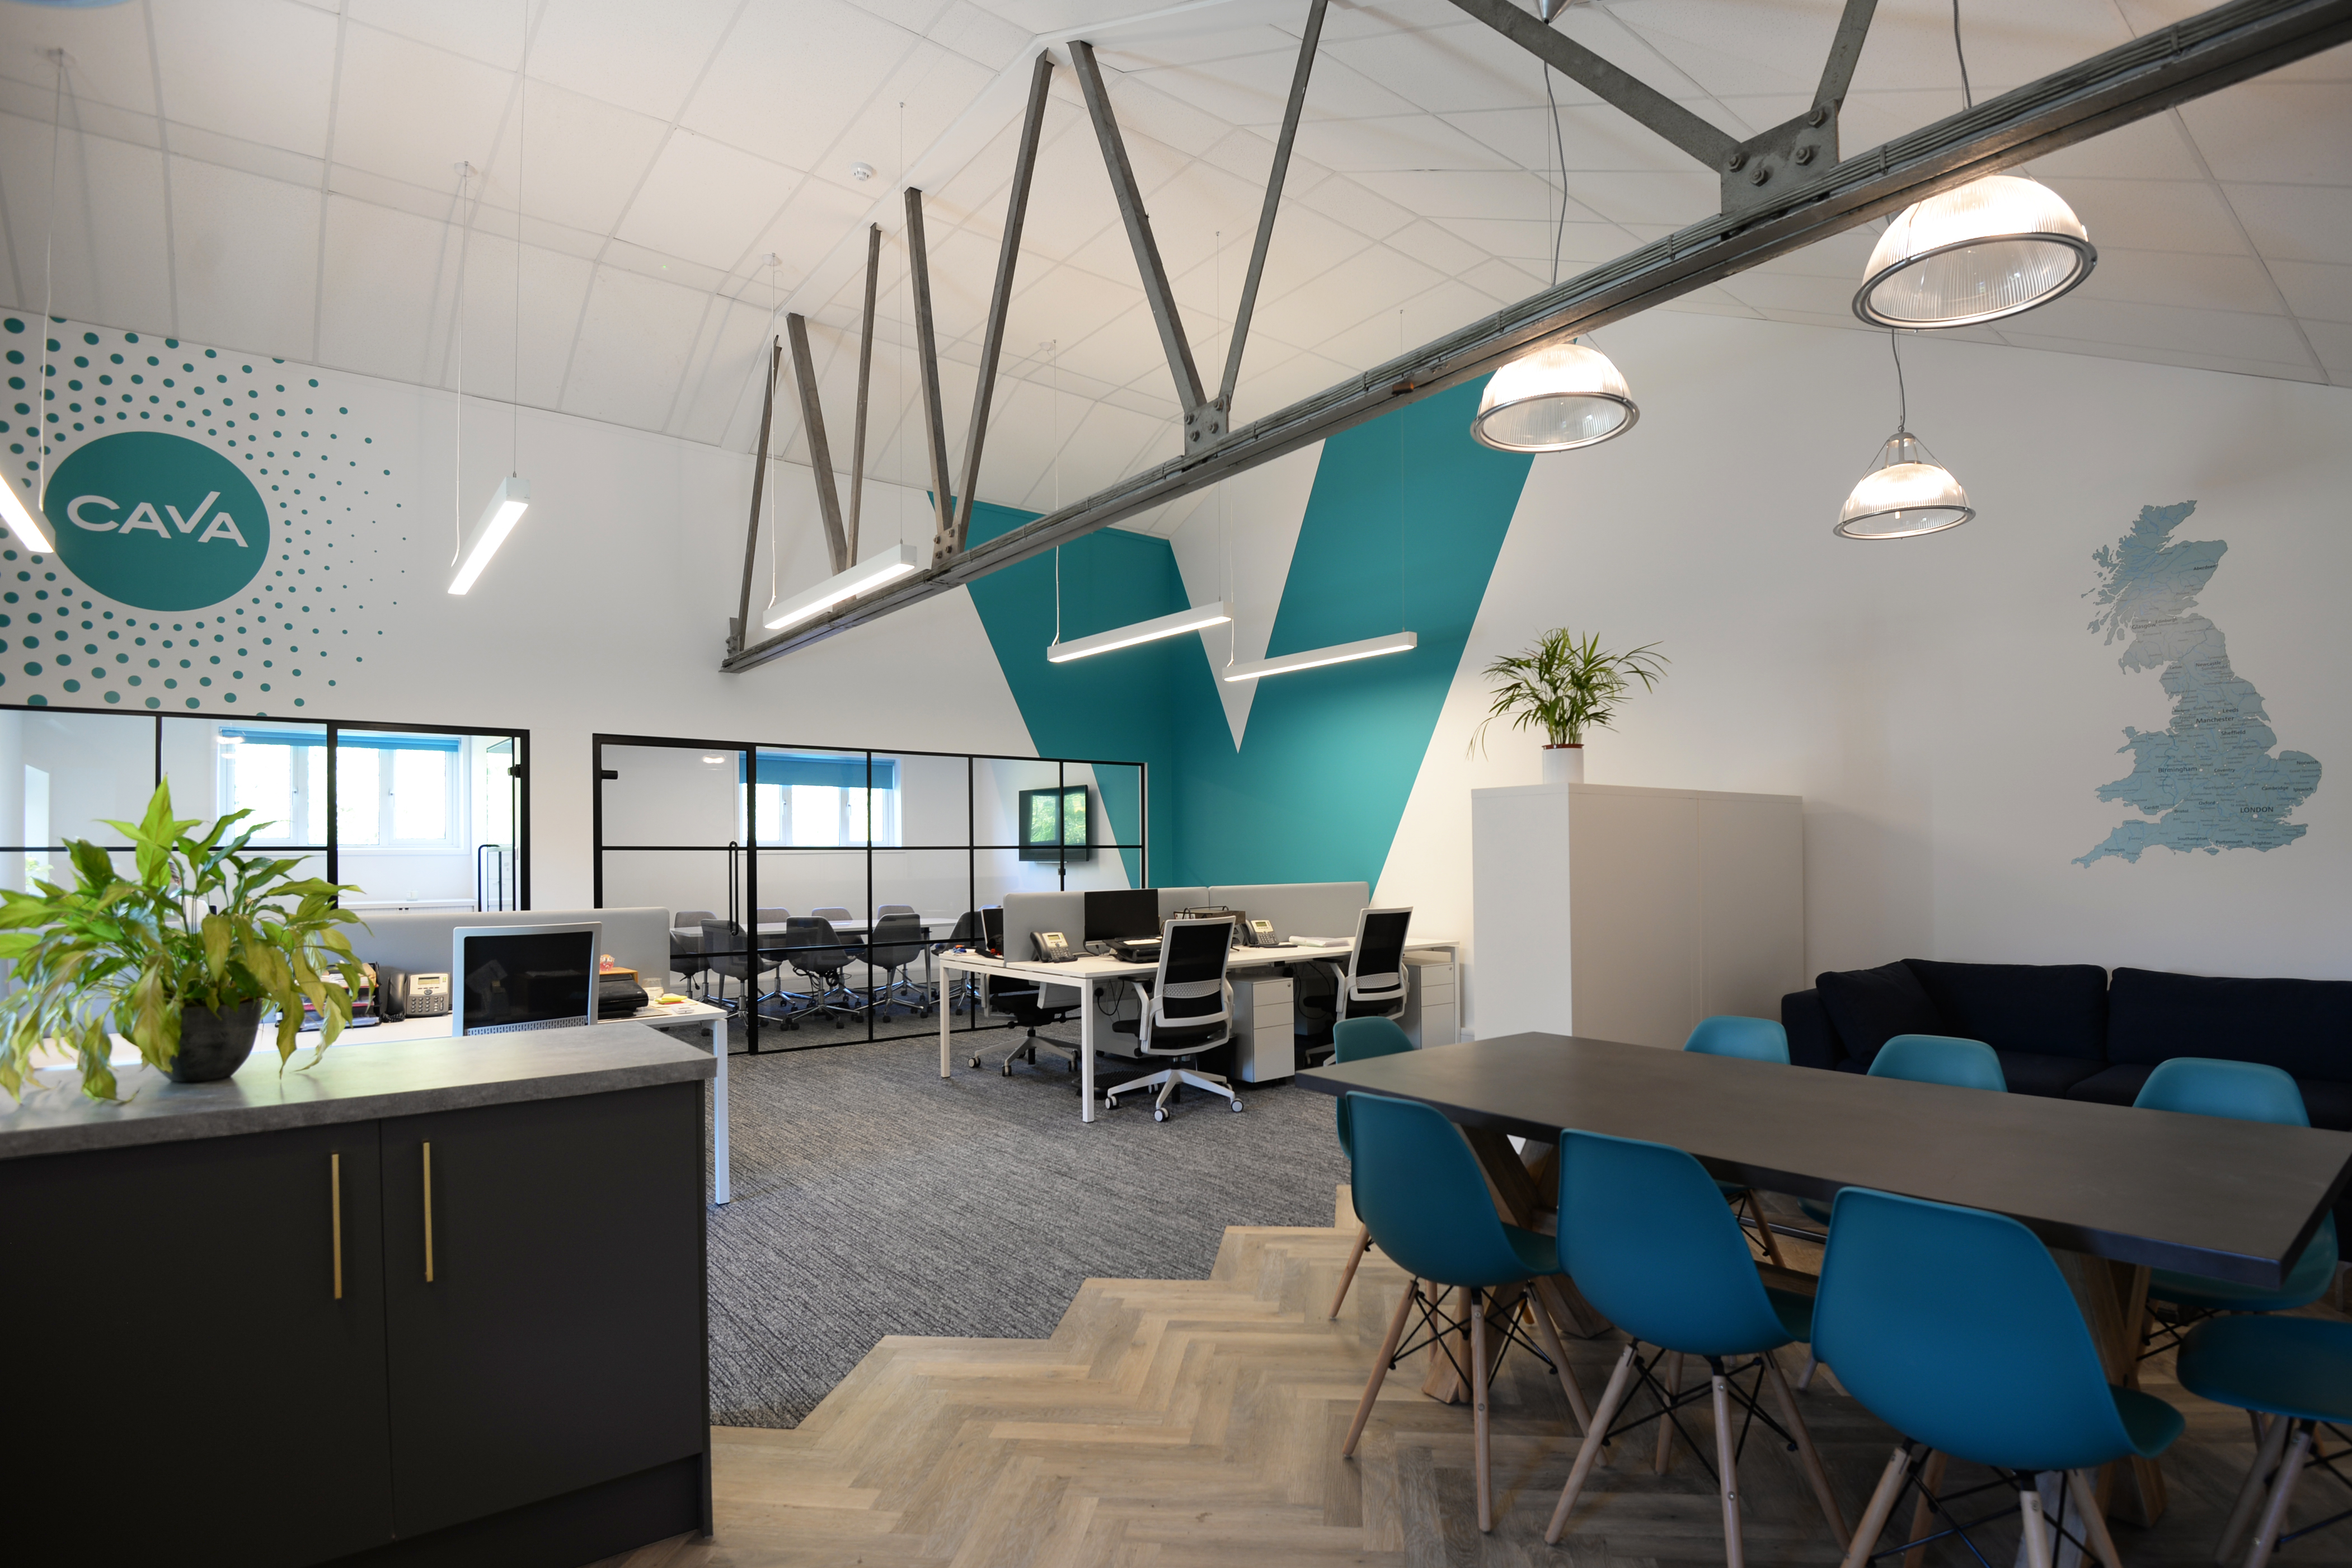 CAVA Office space, Lighting design, Office Design, Office Interior, Cambridge Office Design, Carpet Design, Bespoke Wall Graphics, Crittall Partitioning, Meeting Rooms, Desking, Task Seating, breakout space